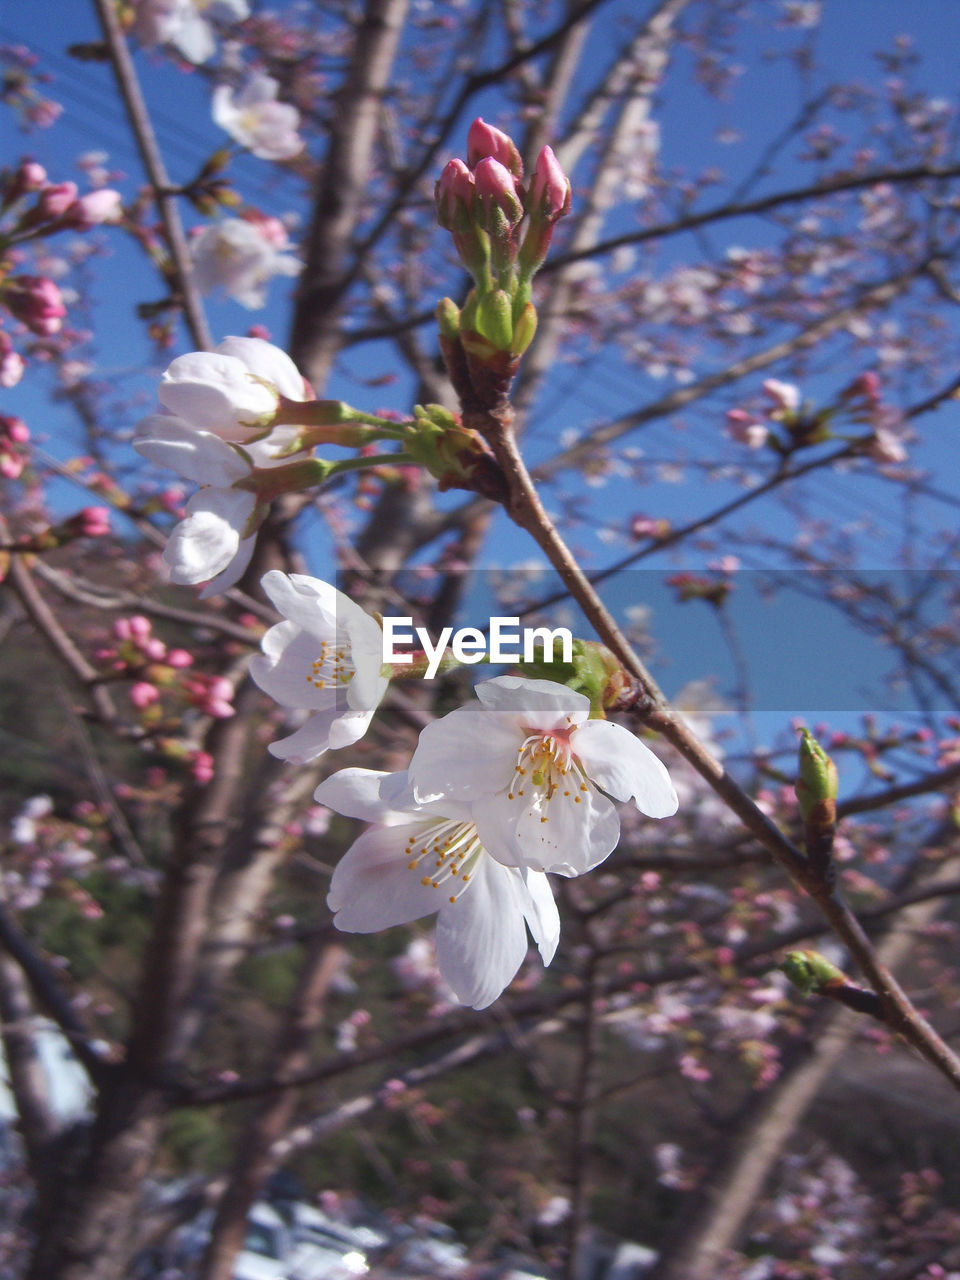 flower, blossom, fragility, white color, tree, springtime, apple blossom, growth, cherry blossom, beauty in nature, apple tree, branch, nature, orchard, freshness, petal, botany, twig, cherry tree, almond tree, flower head, stamen, magnolia, day, no people, pollen, plum blossom, close-up, blooming, low angle view, outdoors